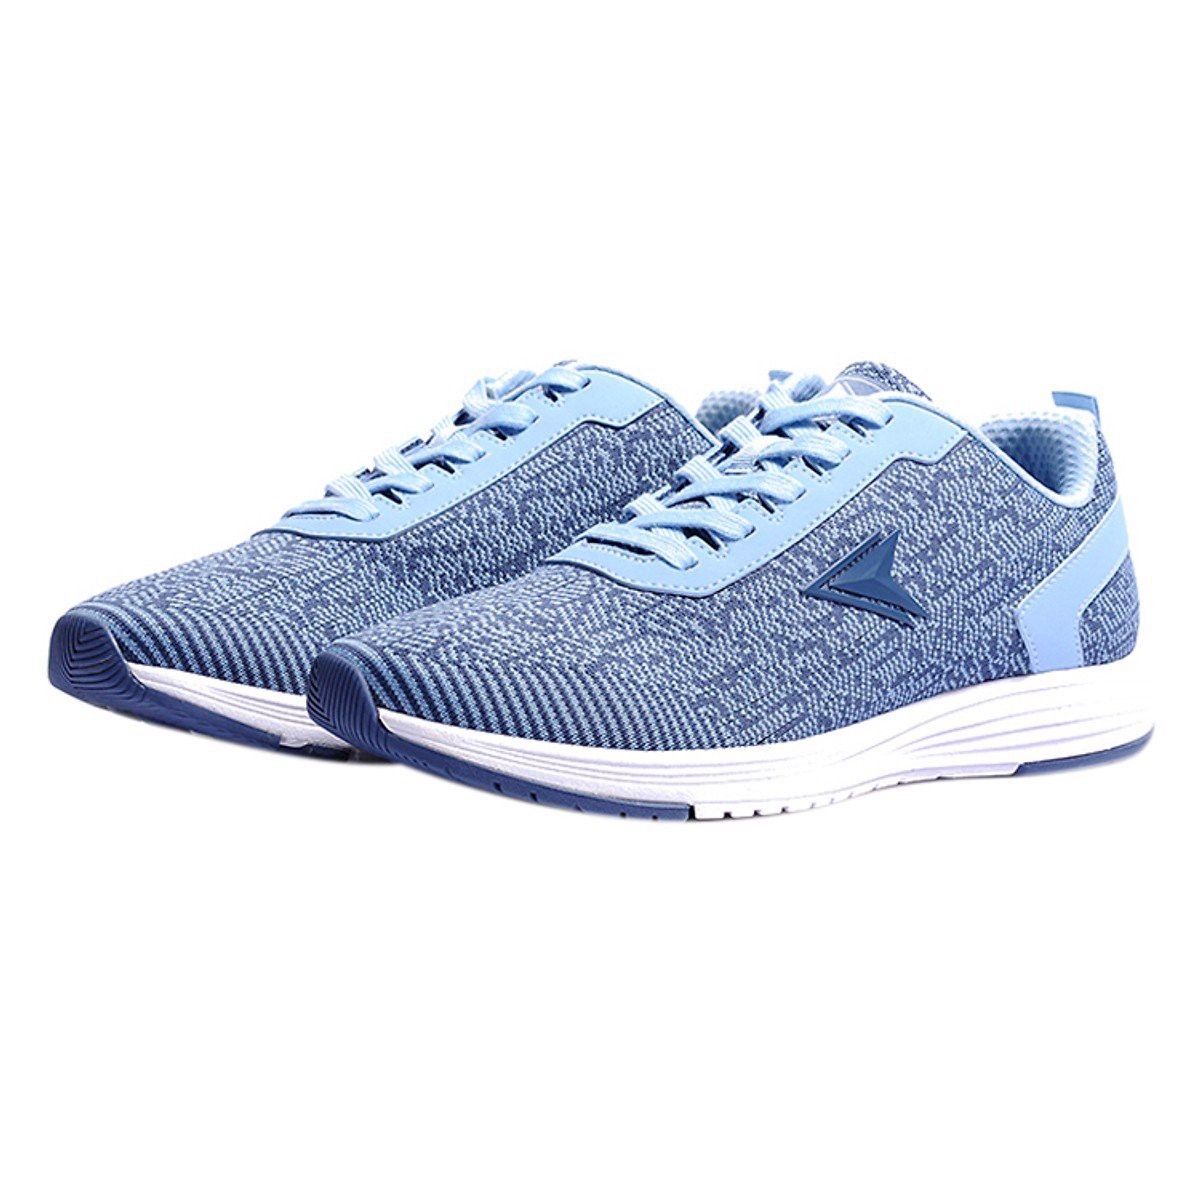 Giày Thể Thao Nam Biti's Hunter Collection Trial Collaboration - Tribal Baby Blue DSM068833XDG Size 39